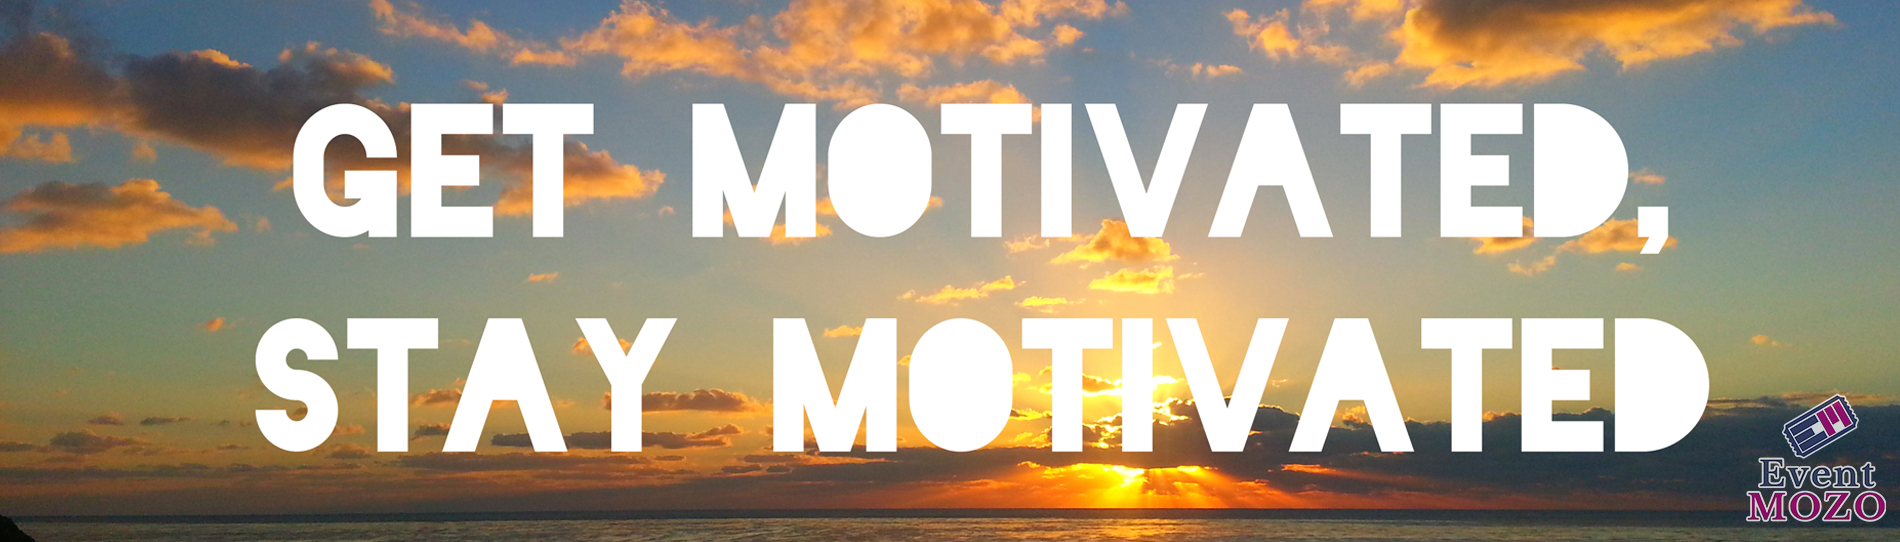 EventMozo Get Motivated! San Bernardino